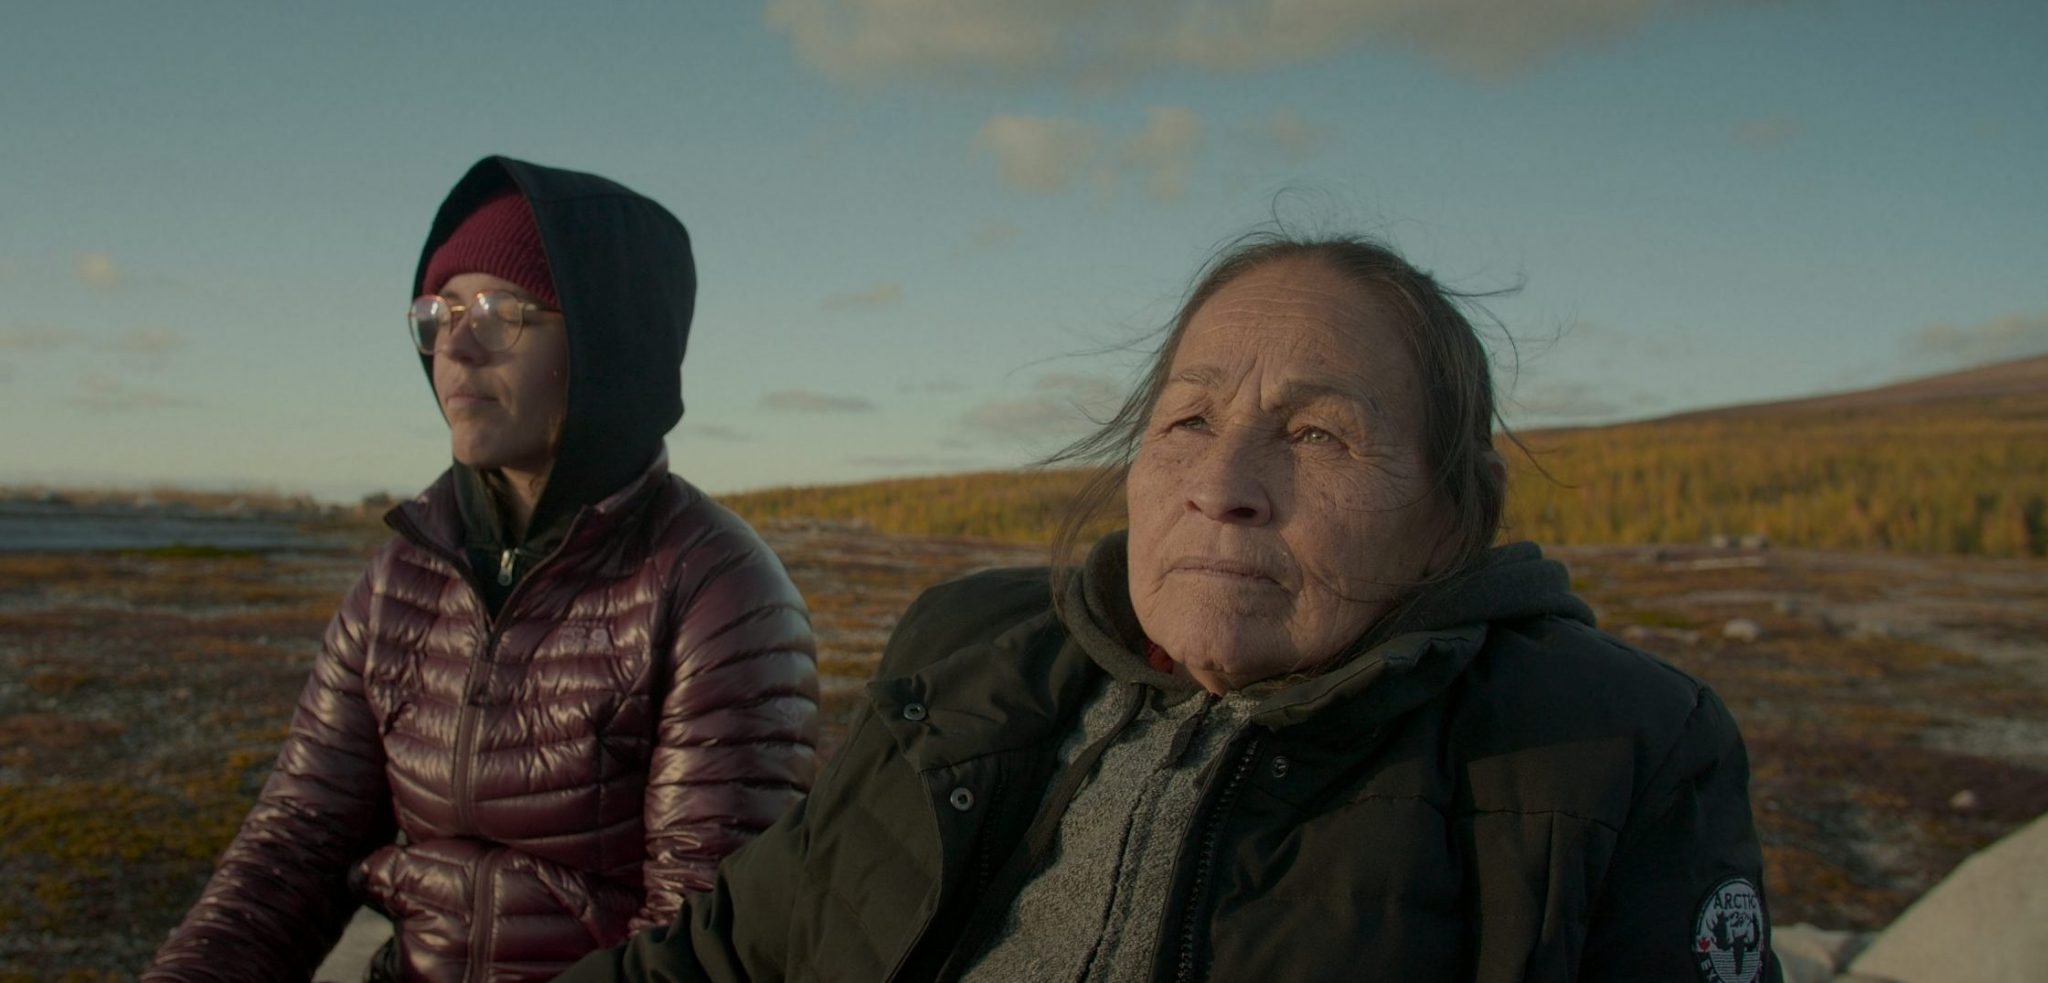 """A still from """"Call Me Human"""". Joséphine, the film's Innu protagonist, sits in the wilderness accompanied by another, younger person. Joséphine looks out into the horizon. The younger has a tranquil expression, with their eyes closed. Though there is a gentle light on their faces, they both wear large cold weather jackets."""